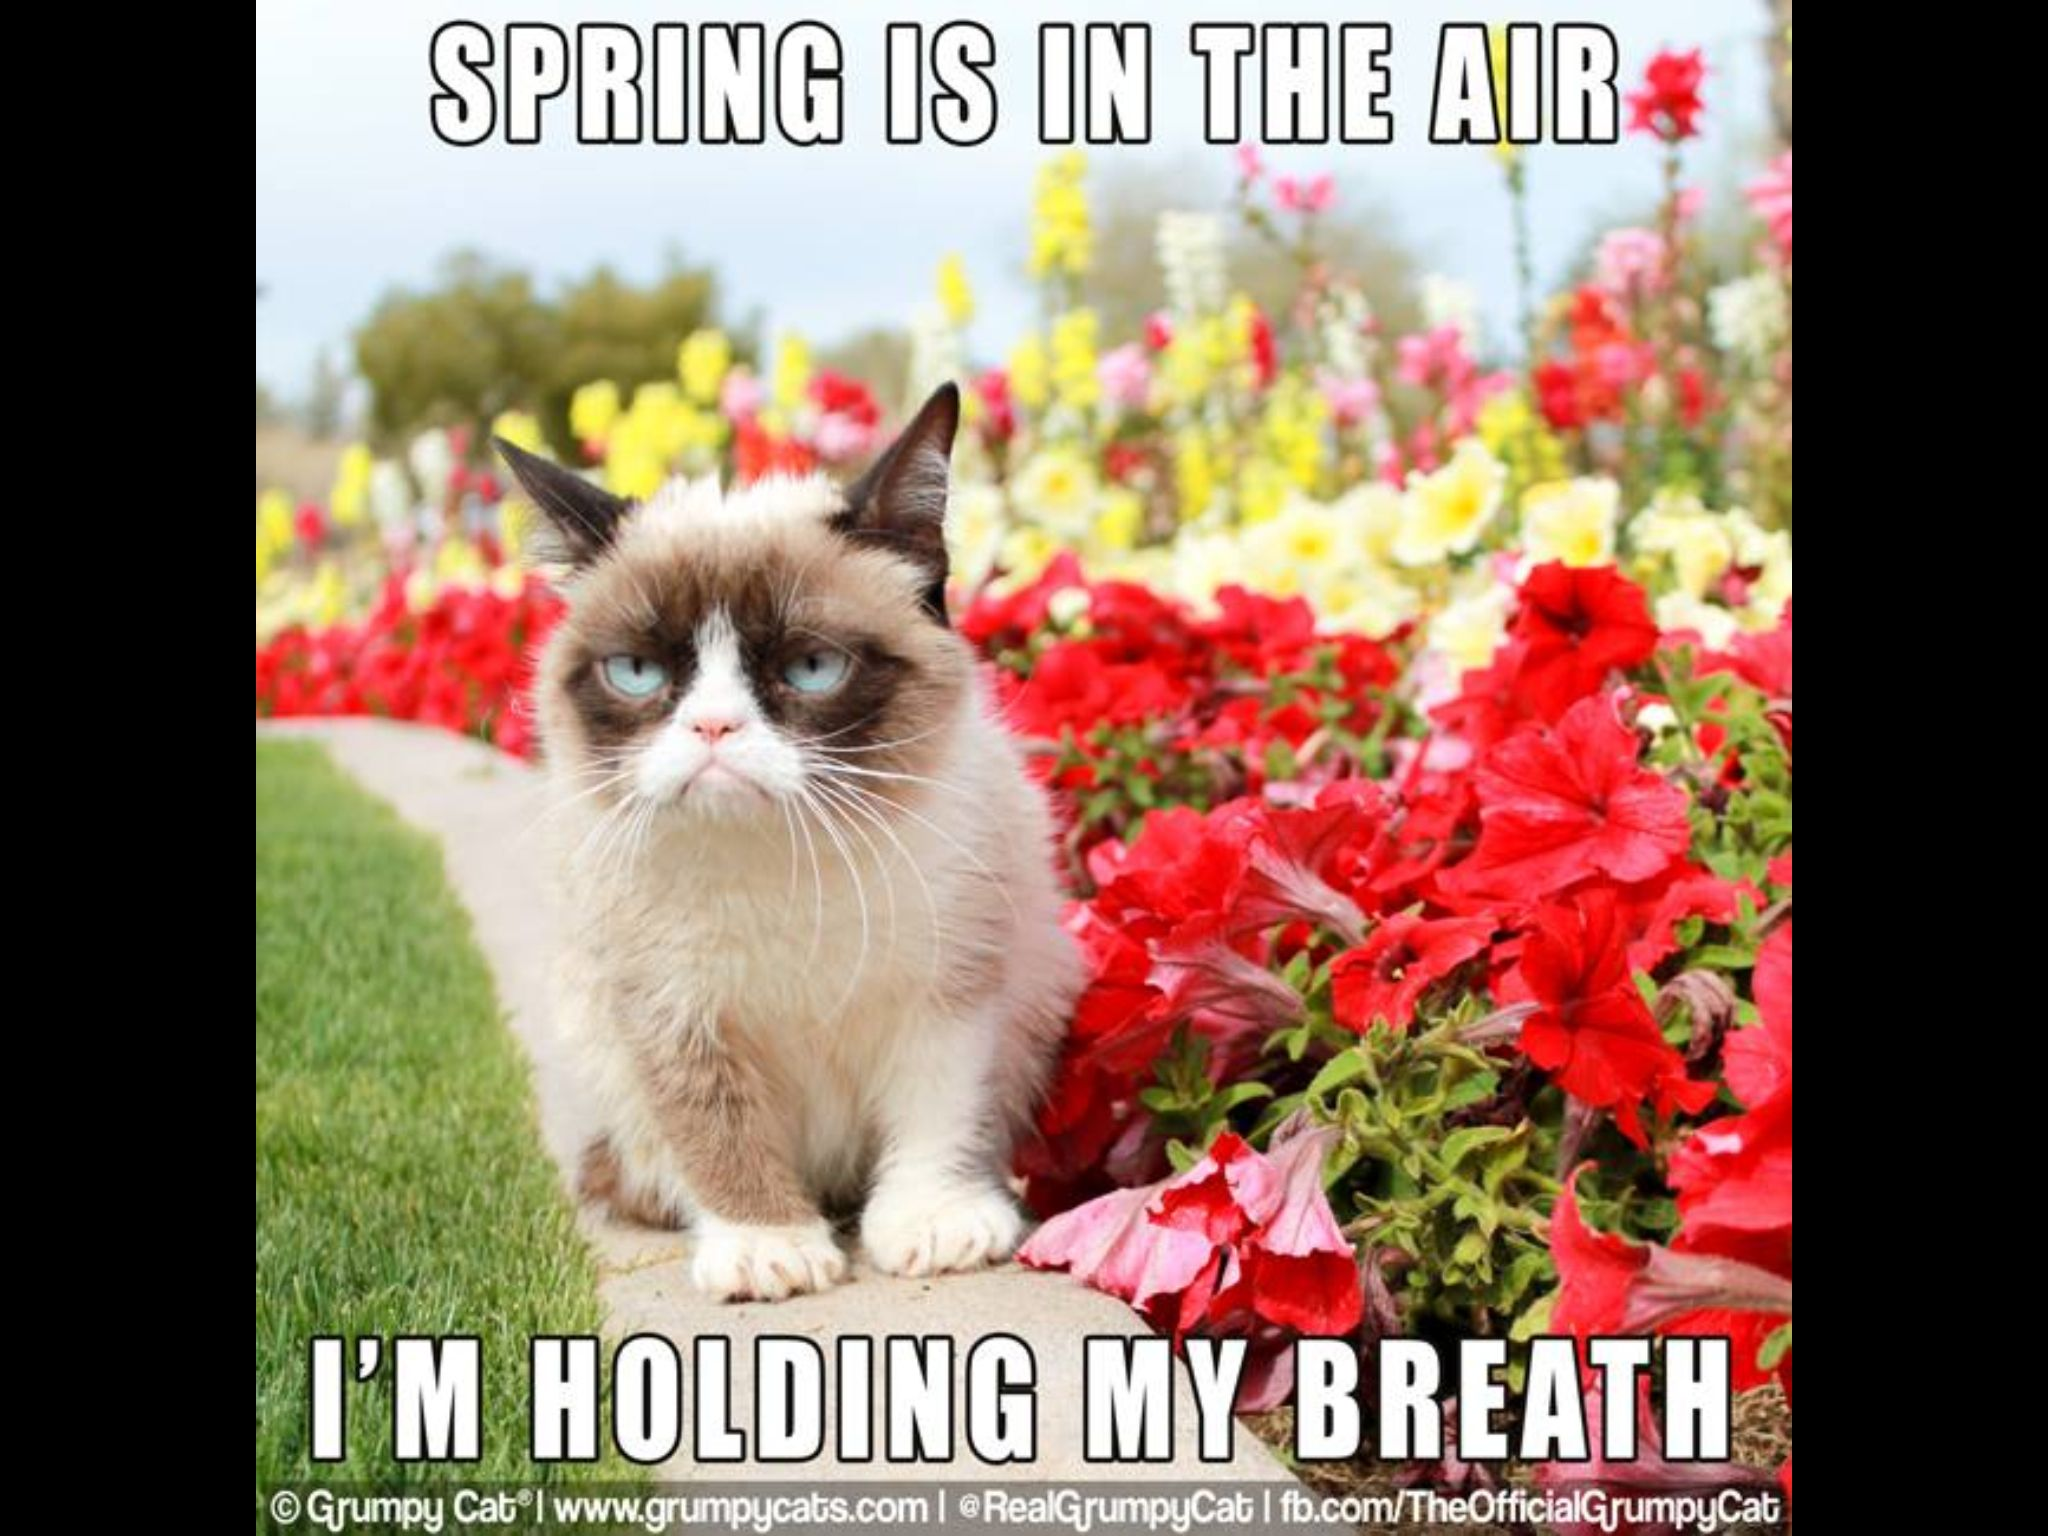 It S March In Utah And I M Holding My Breath Too Funny Grumpy Cat Grumpy Cat Meme Grumpy Cat Humor